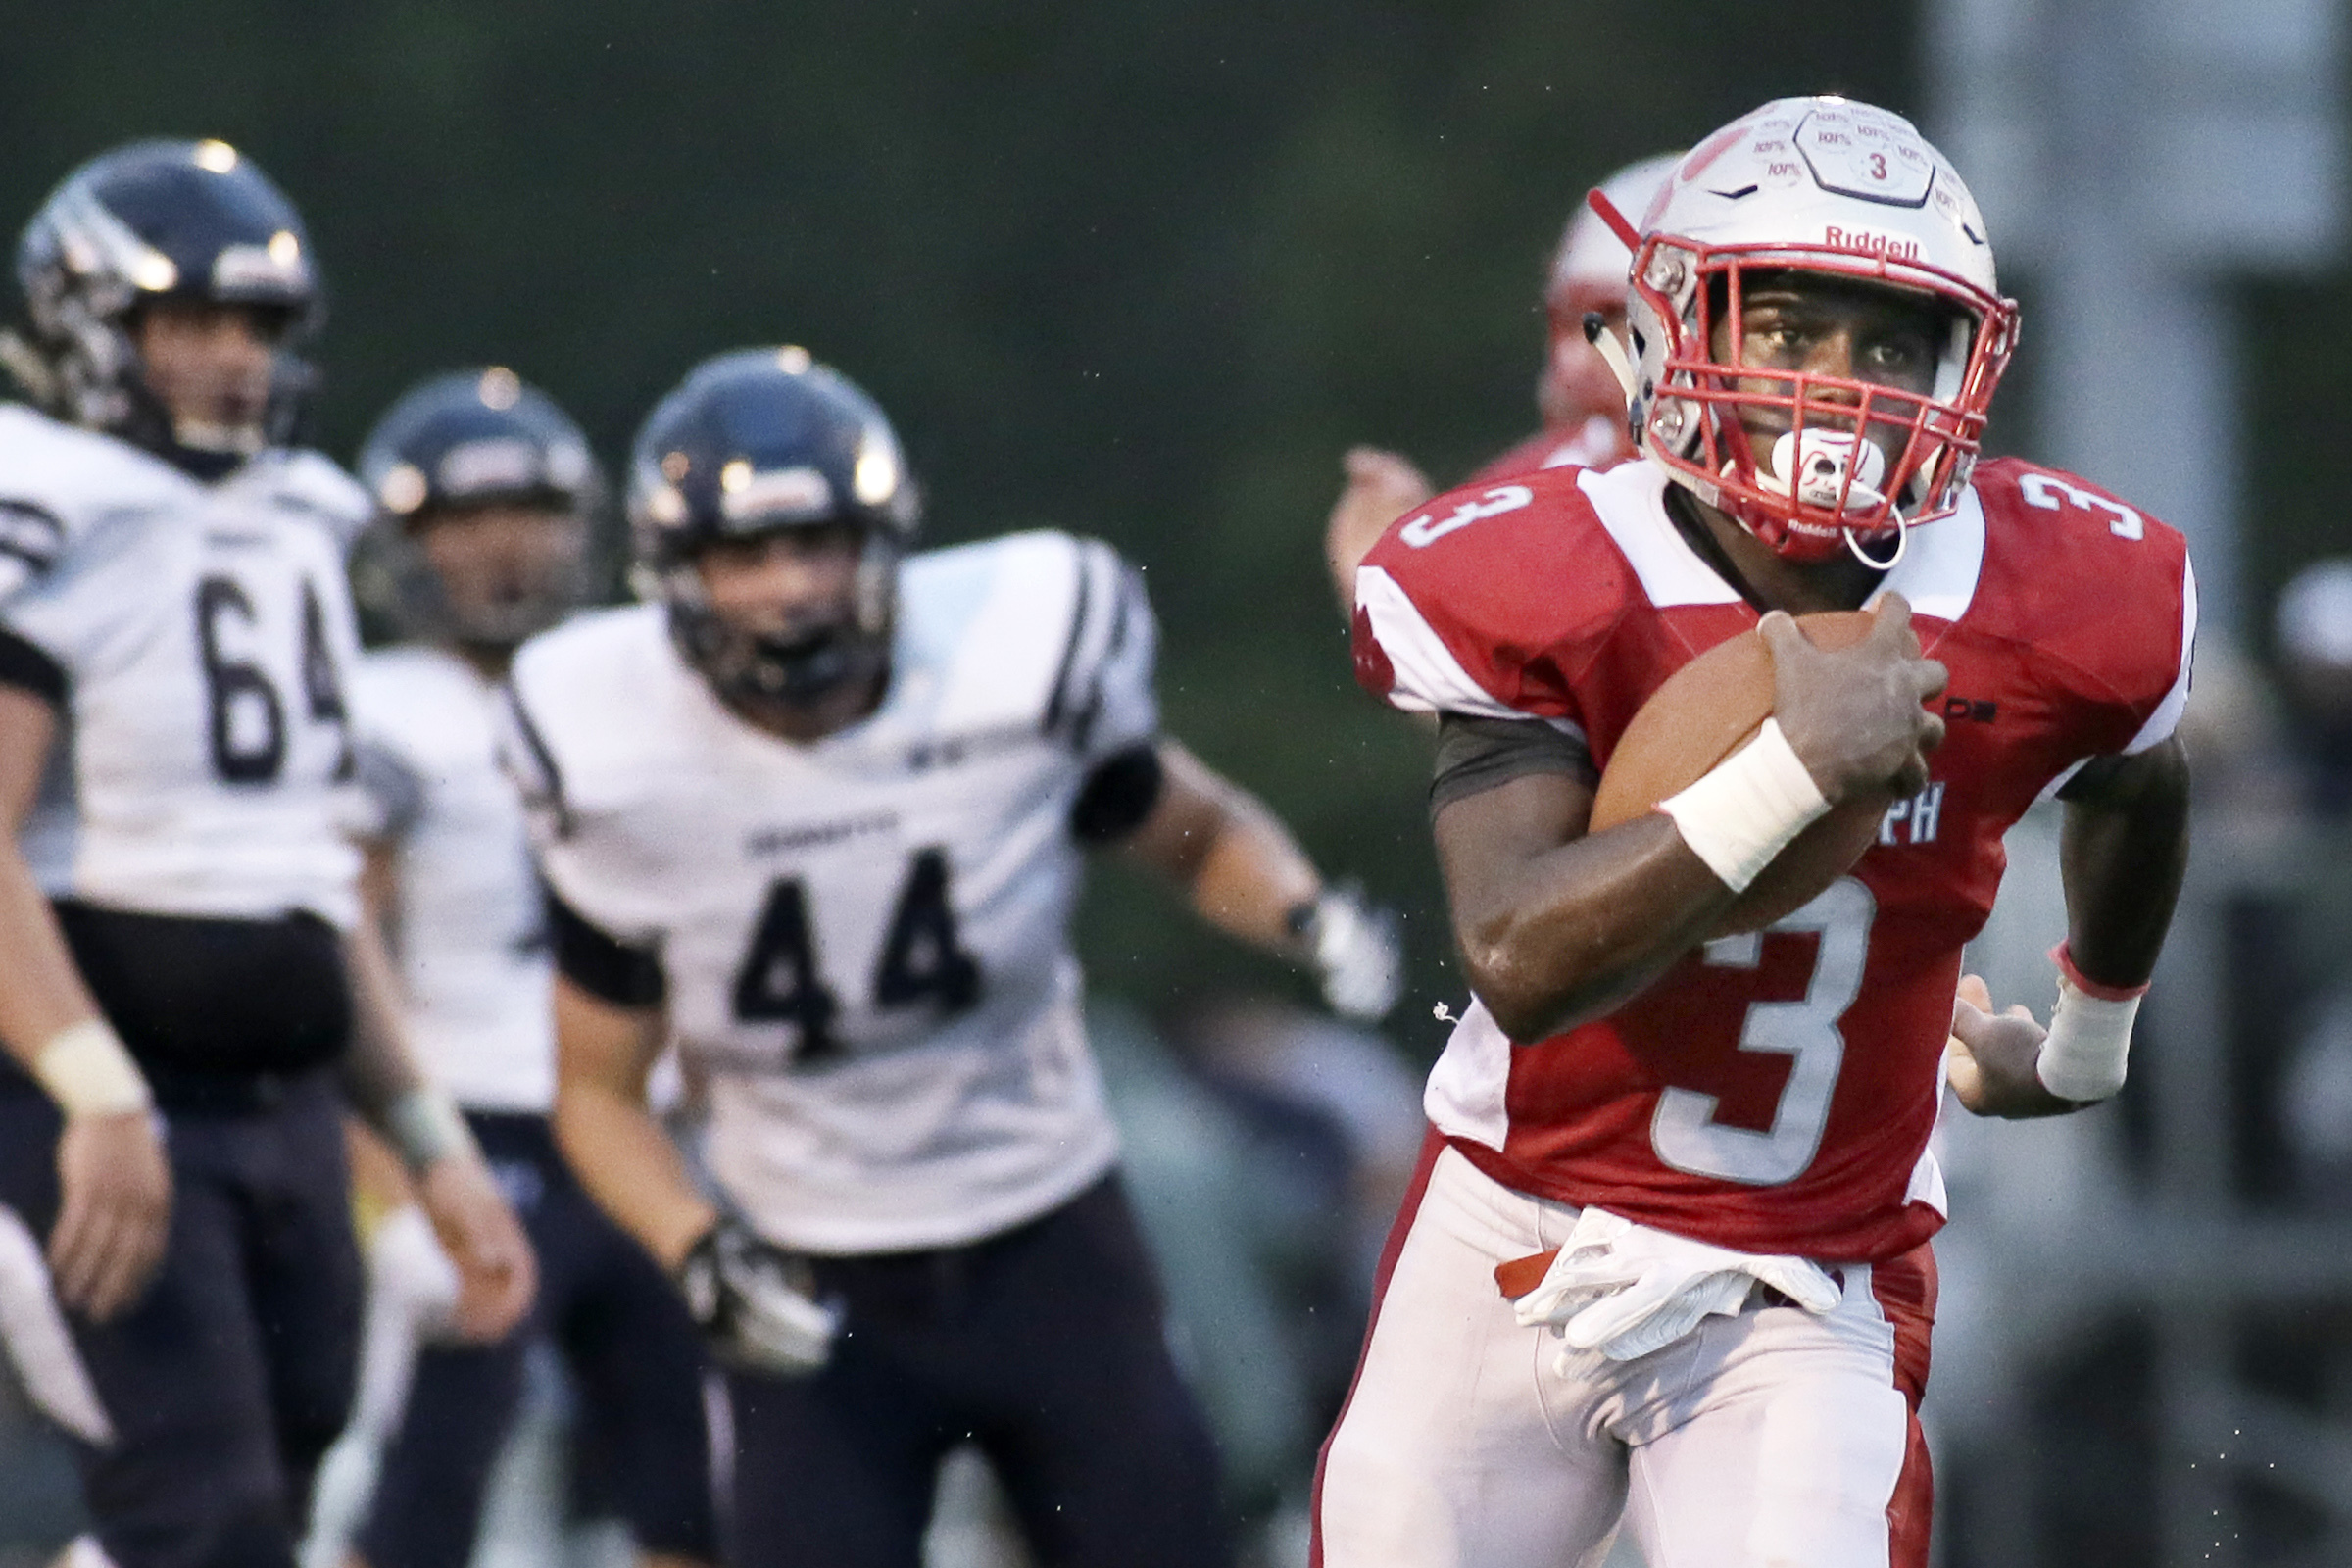 St. Joseph junior Jada Byers leads South Jersey with 29 touchdowns.